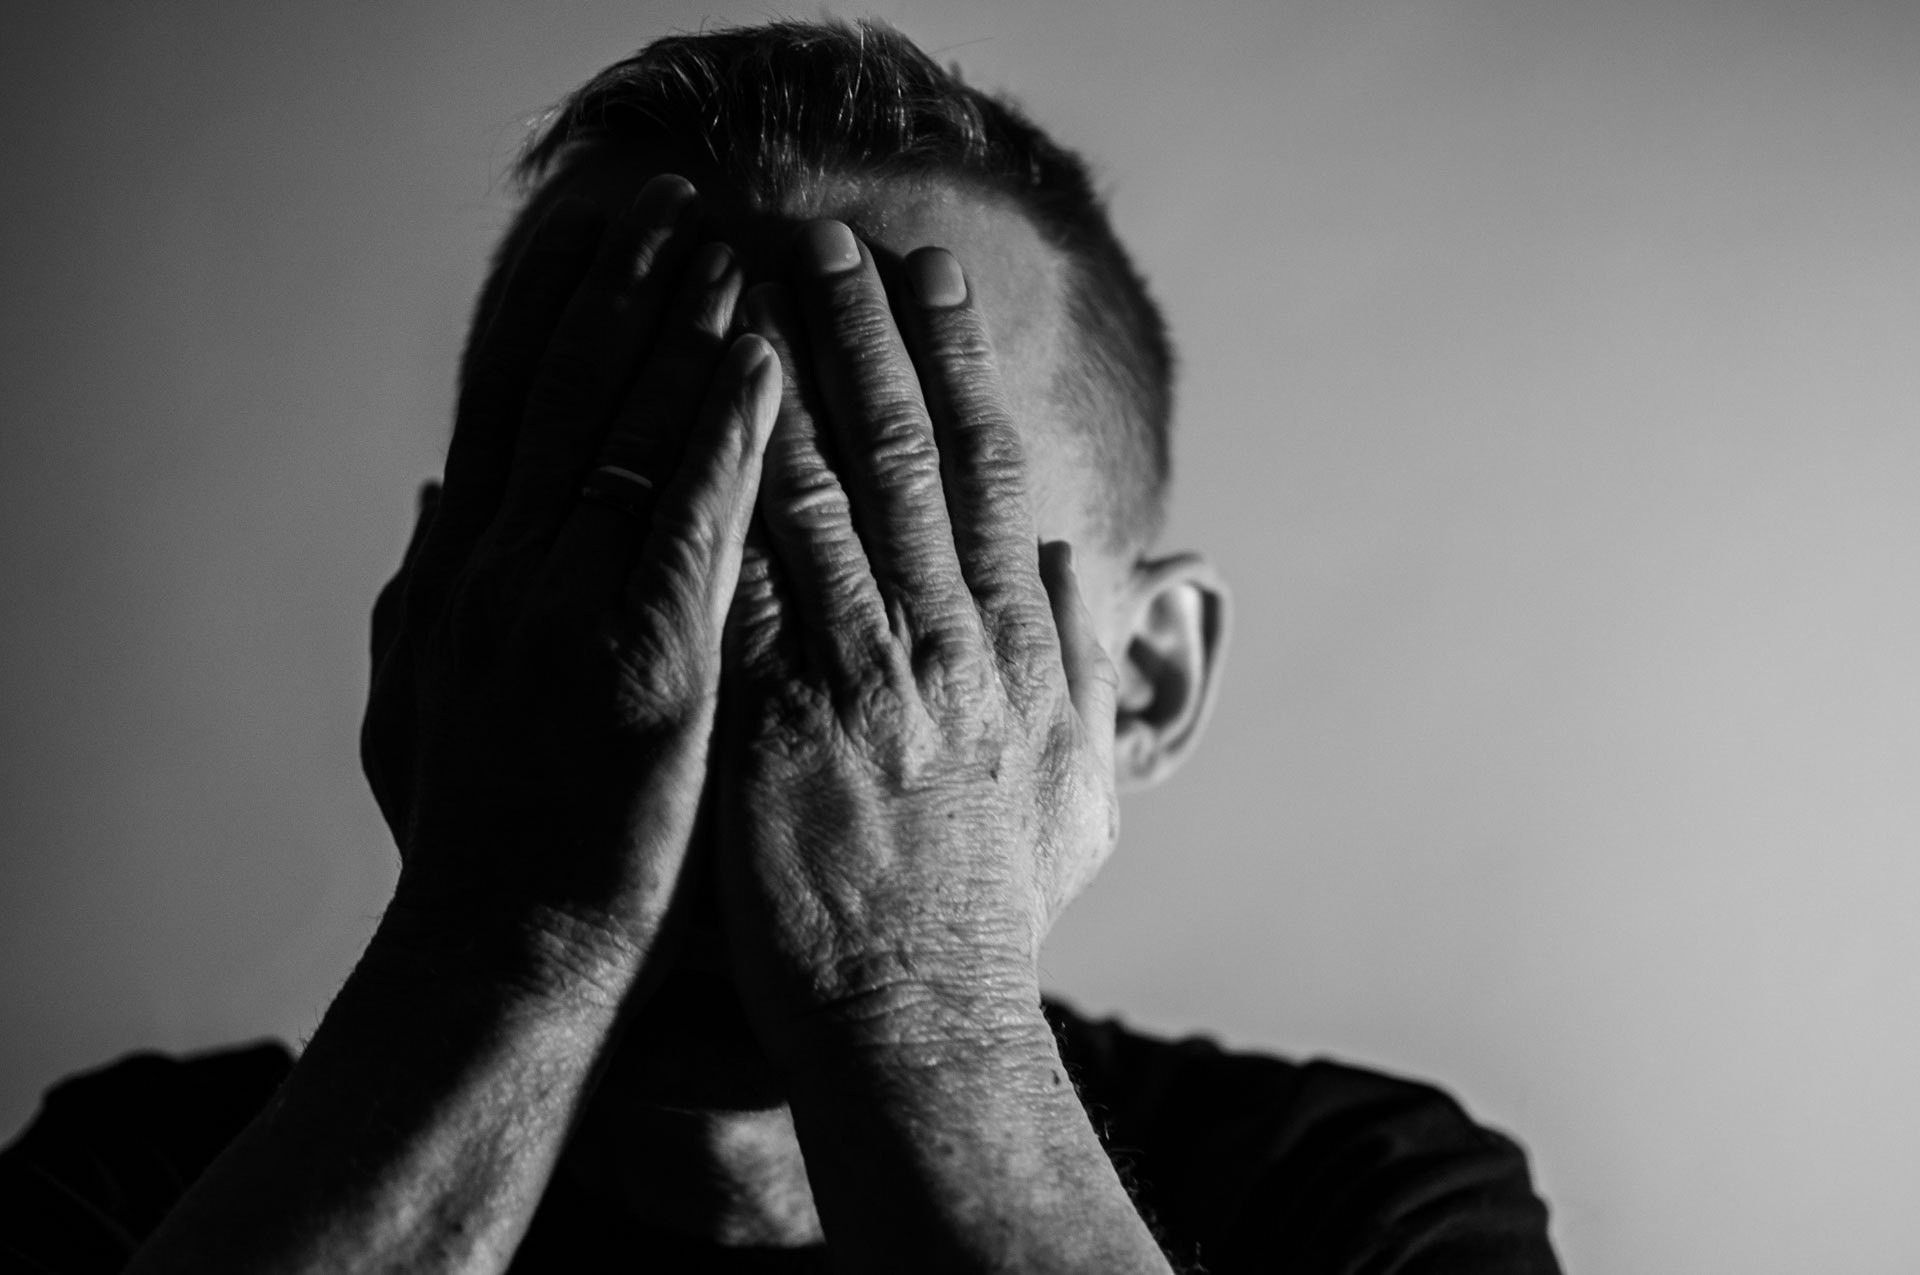 Debt and Mental Health